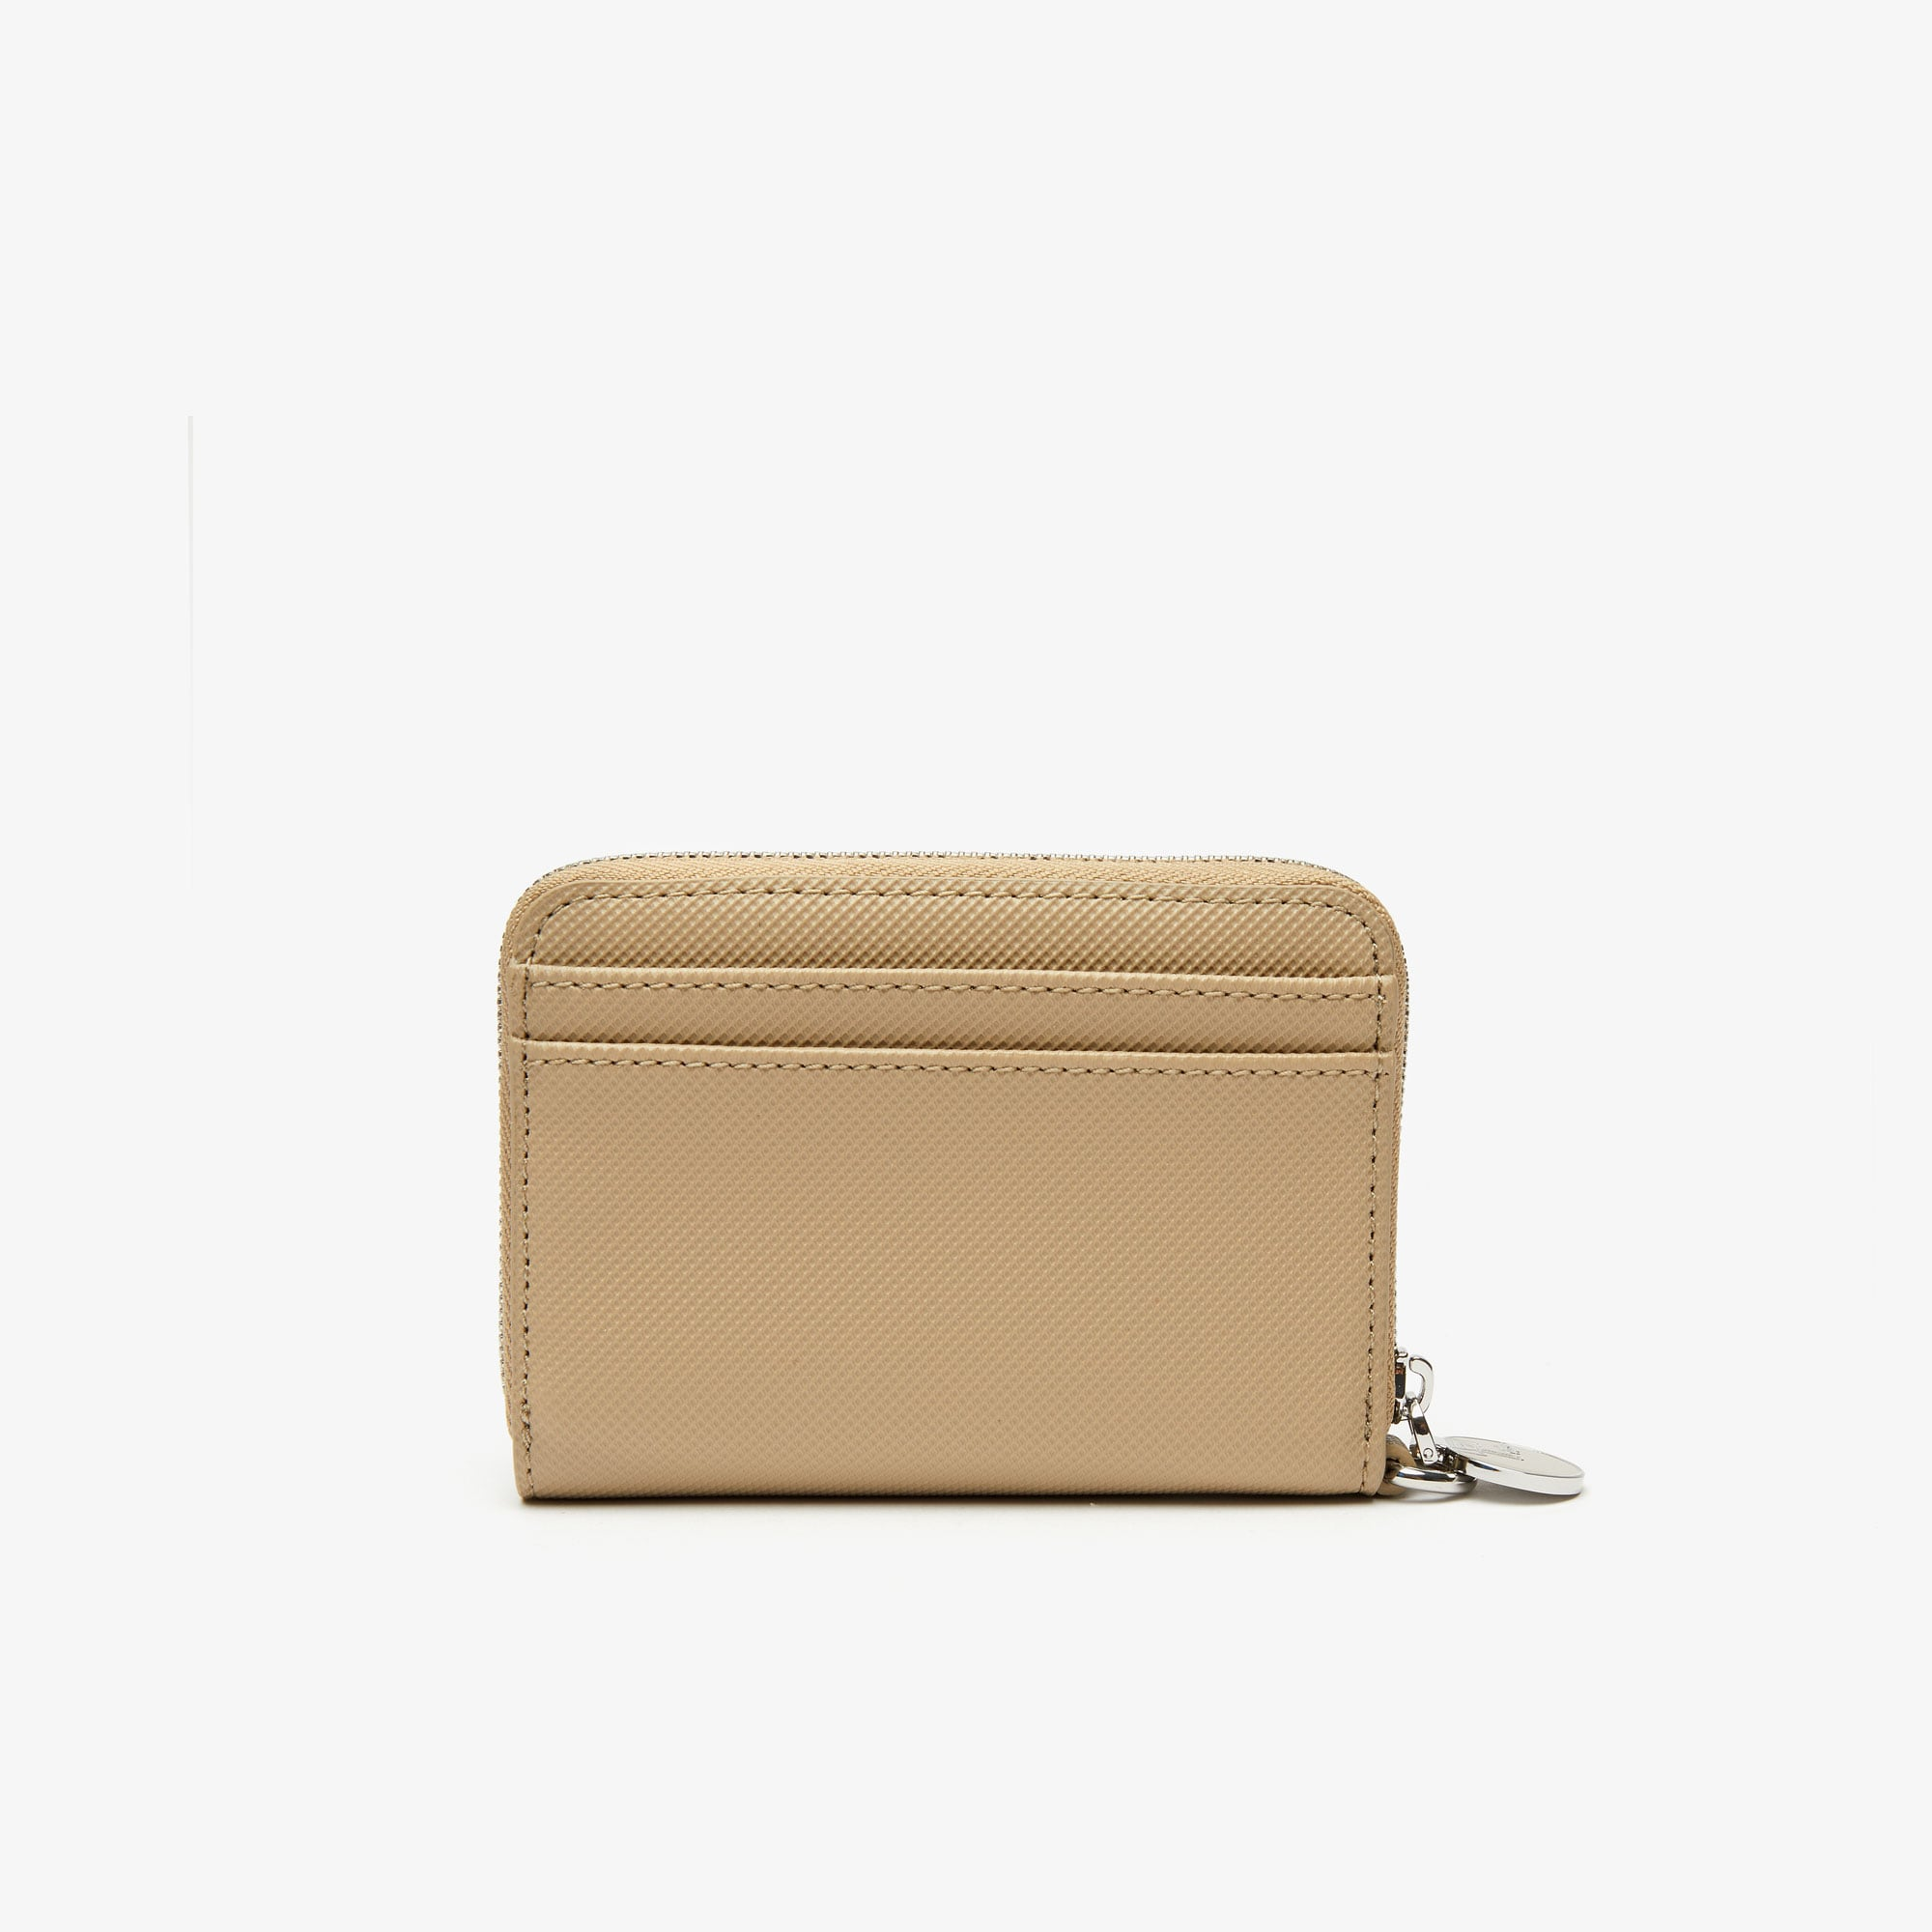 Women's Daily Classic Small Coated Canvas Wallet